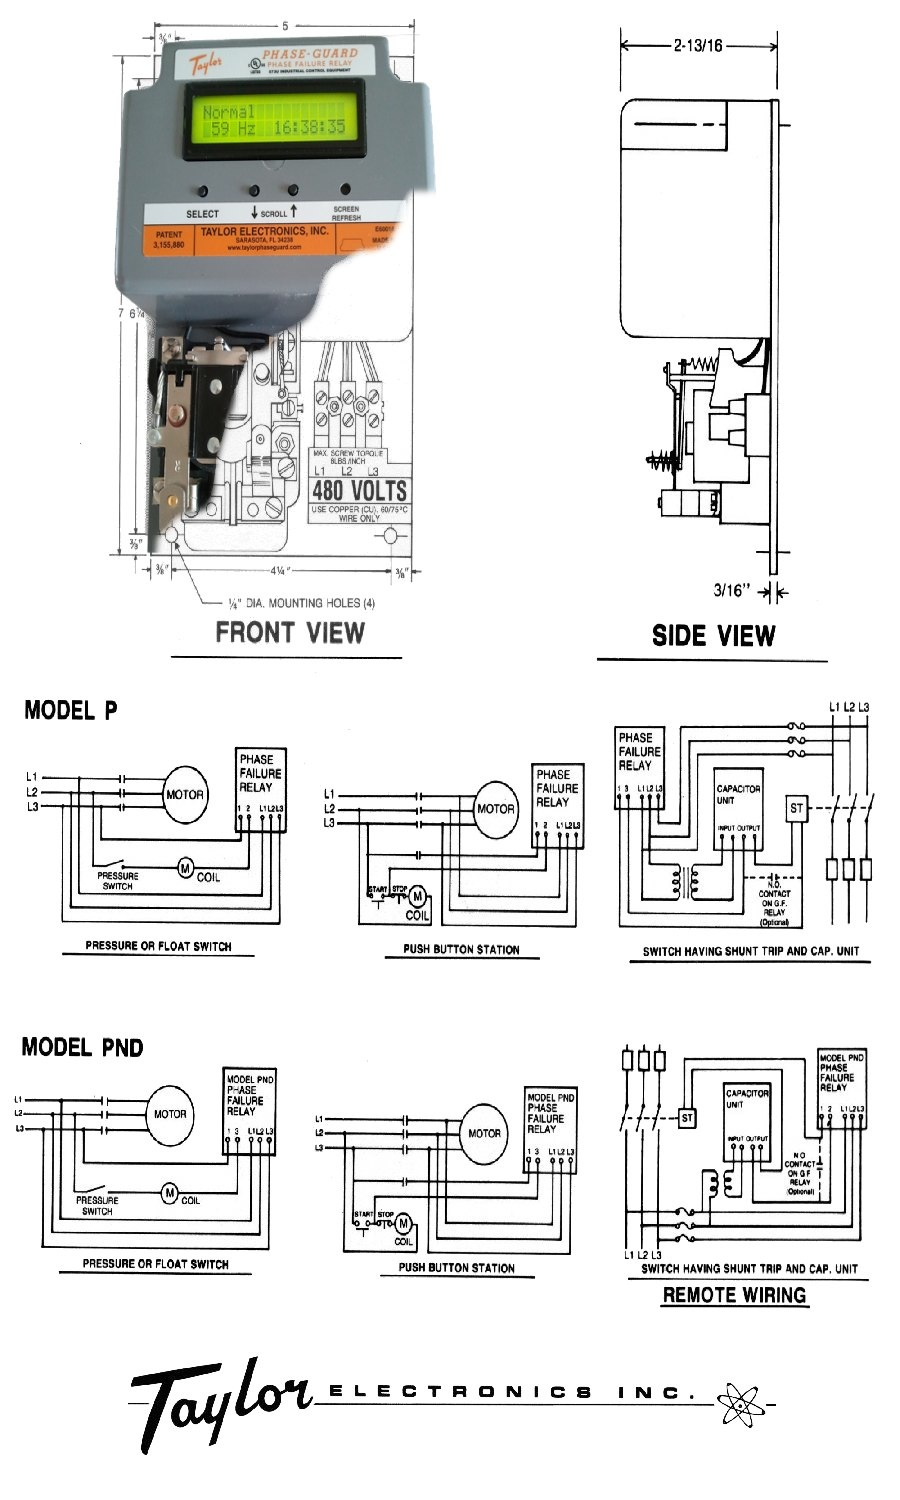 genesis house wiring diagram wiring diagram schematics microphone wiring diagrams taylor forklift wiring diagrams auto electrical [ 900 x 1500 Pixel ]